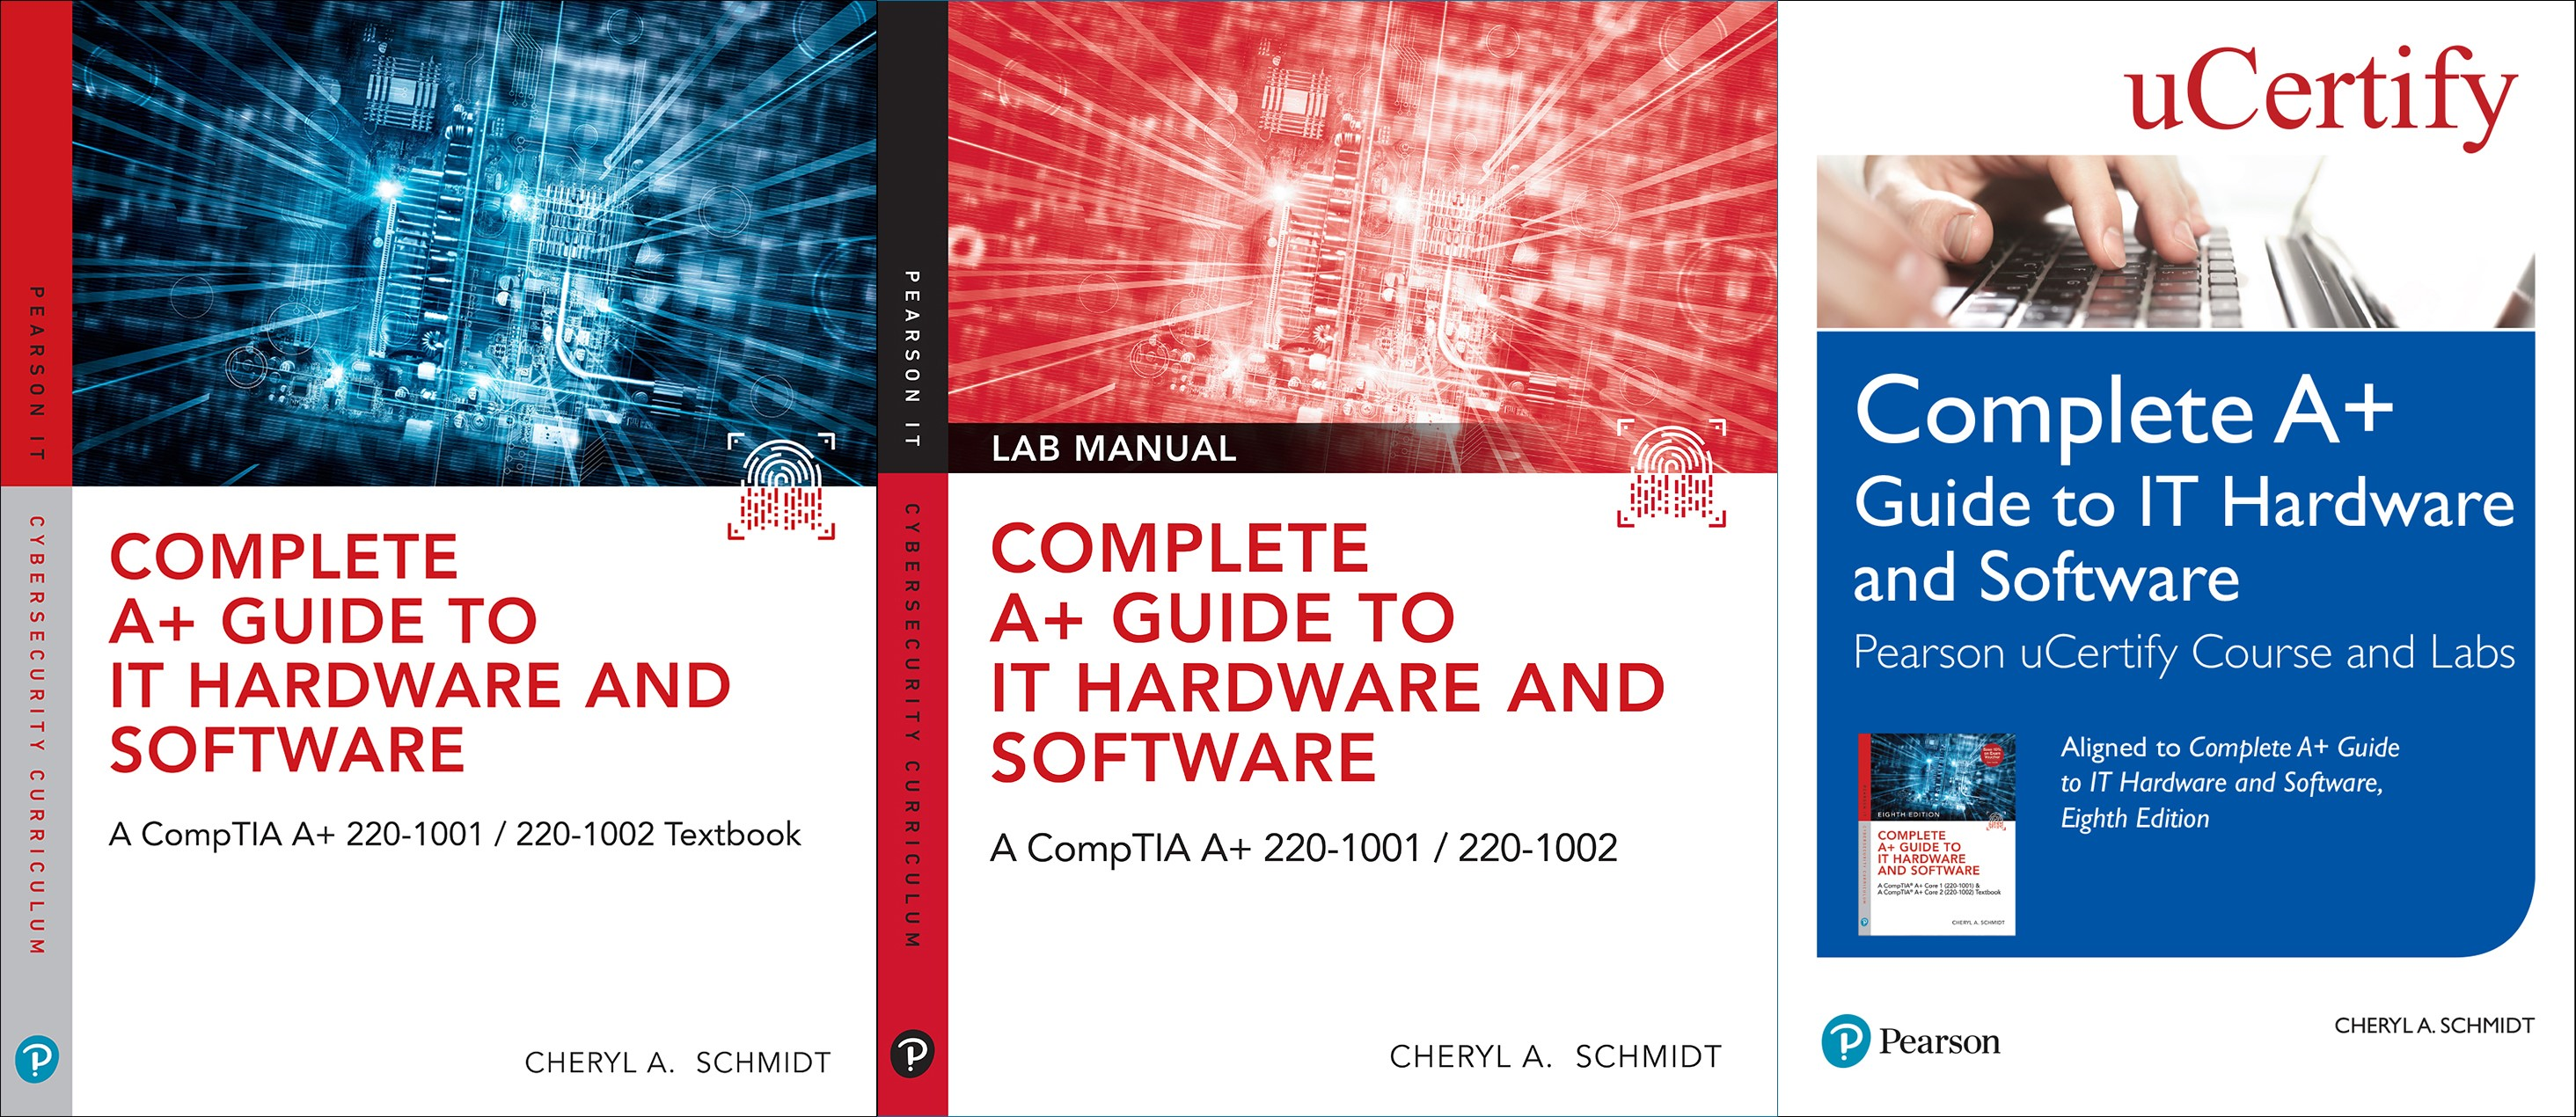 Complete A+ Guide to IT Hardware and Software, 8th Edition Textbook, Lab Manual and uCertify Course and Labs bundle